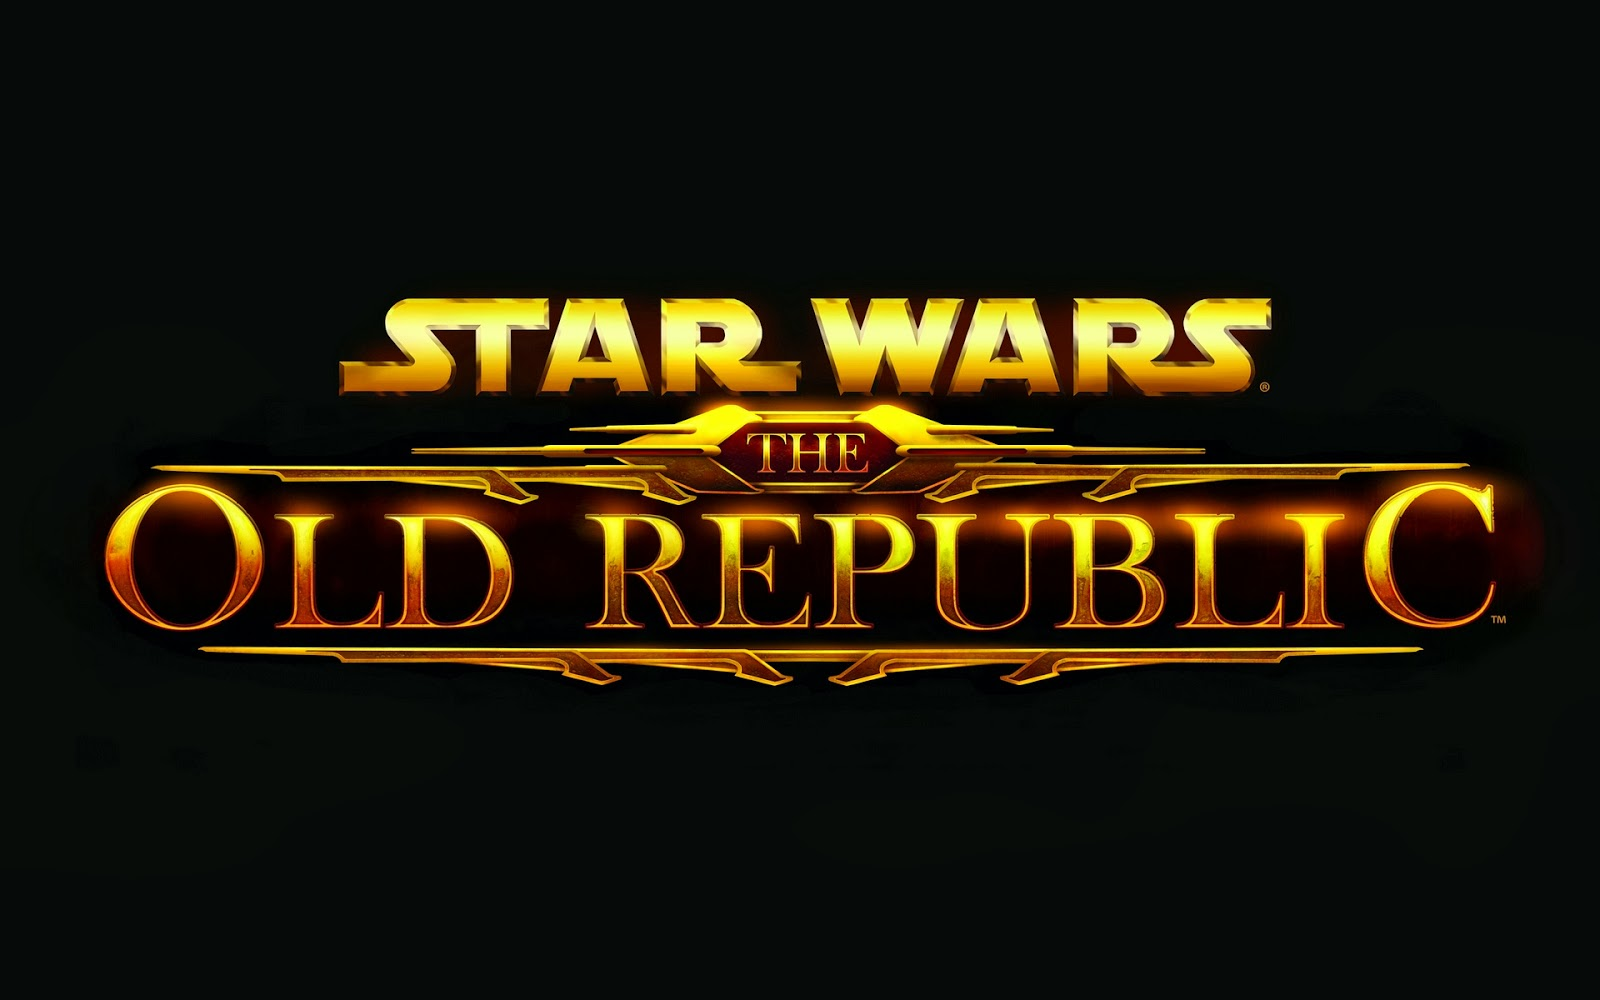 hd wallpapers swtor wallpaper star wars the old republic logo games 1600x1000